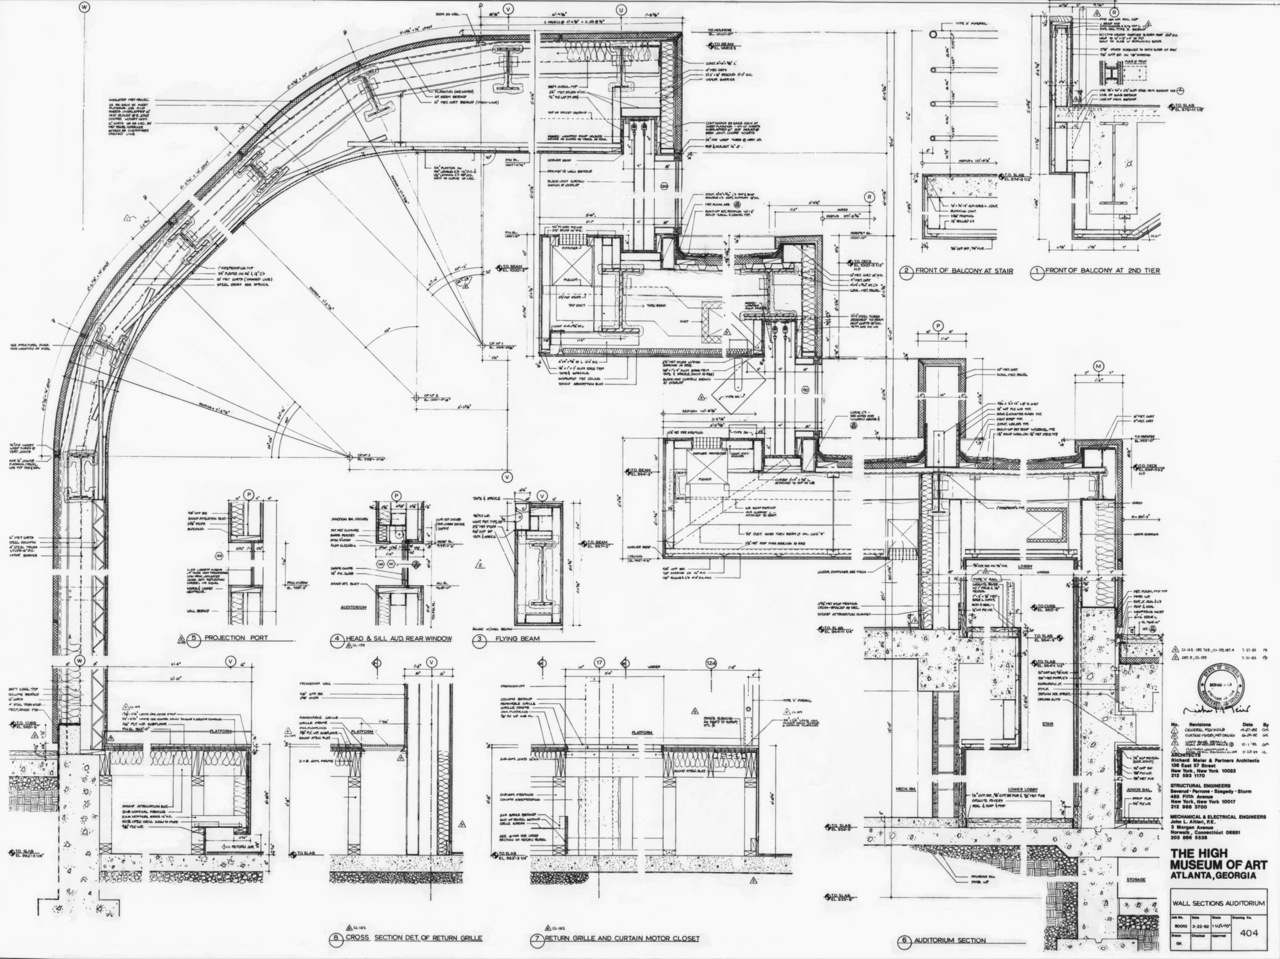 Architectural drawing rich image and wallpaper for Architecture plan drawing